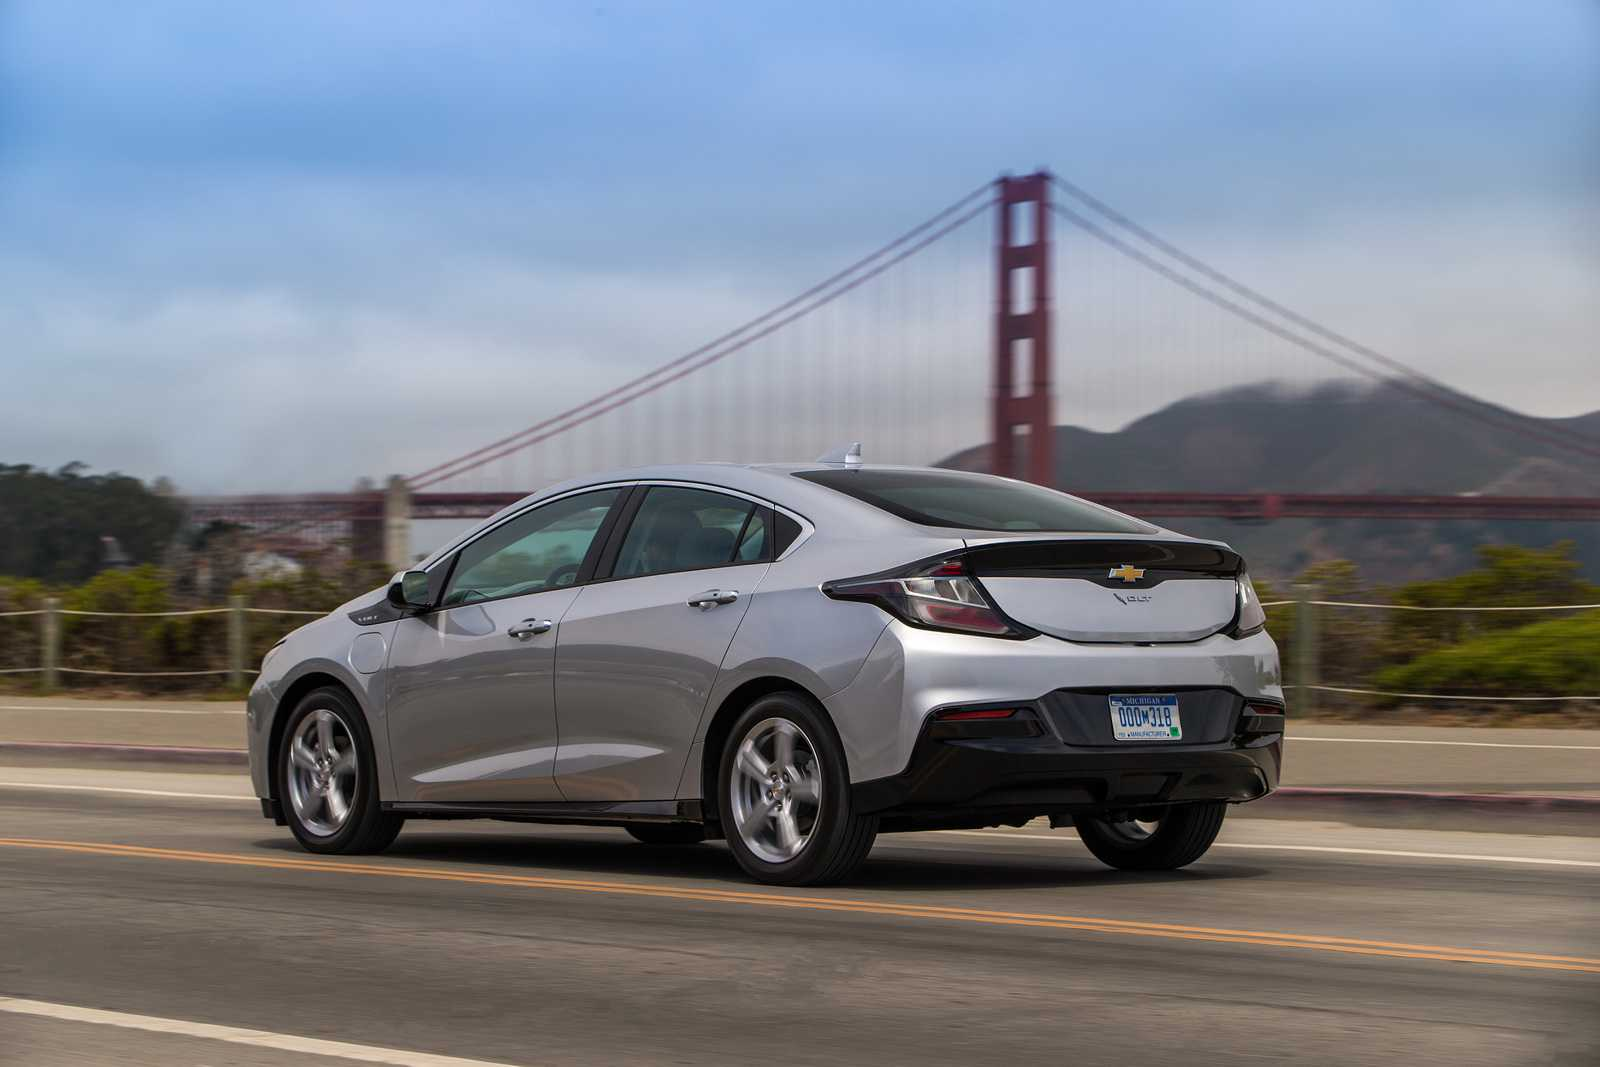 2016 Chevrolet Volt is a Toyota Prius Killer – Here's Why